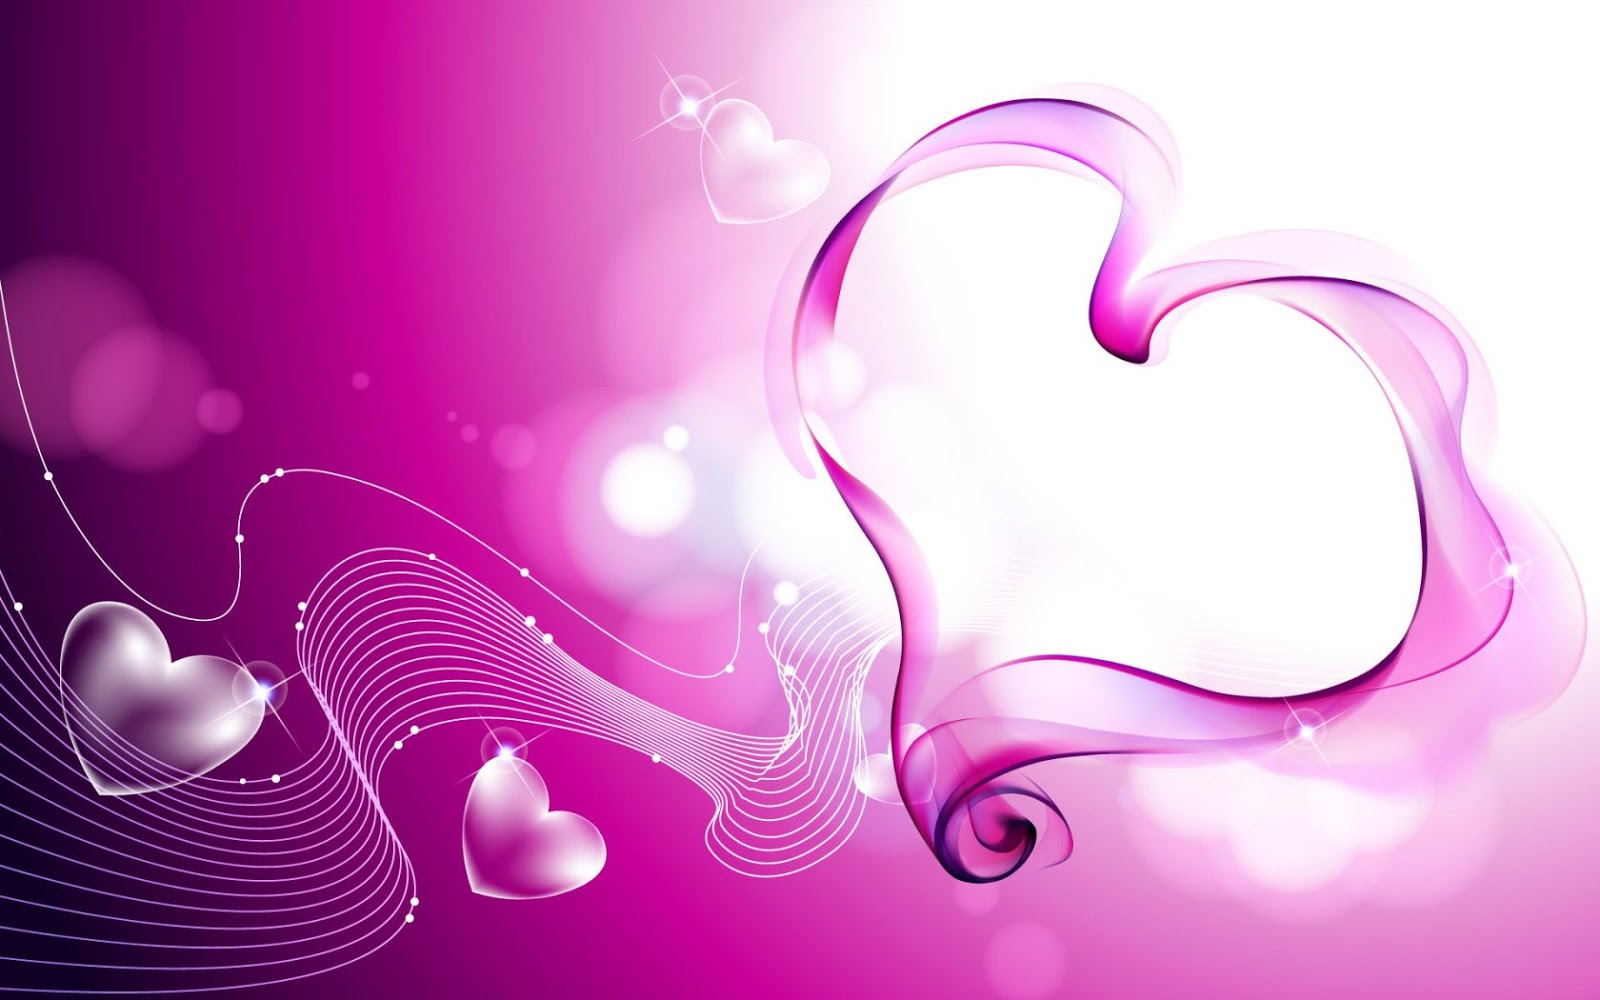 http://4.bp.blogspot.com/-kCNDl63ftLk/UQPDd2OxBLI/AAAAAAAABjk/6X3qZl1eOgg/s1600/pink_love_hearts_smoke-valentines+day-fresh+hd+wallpapers.jpg